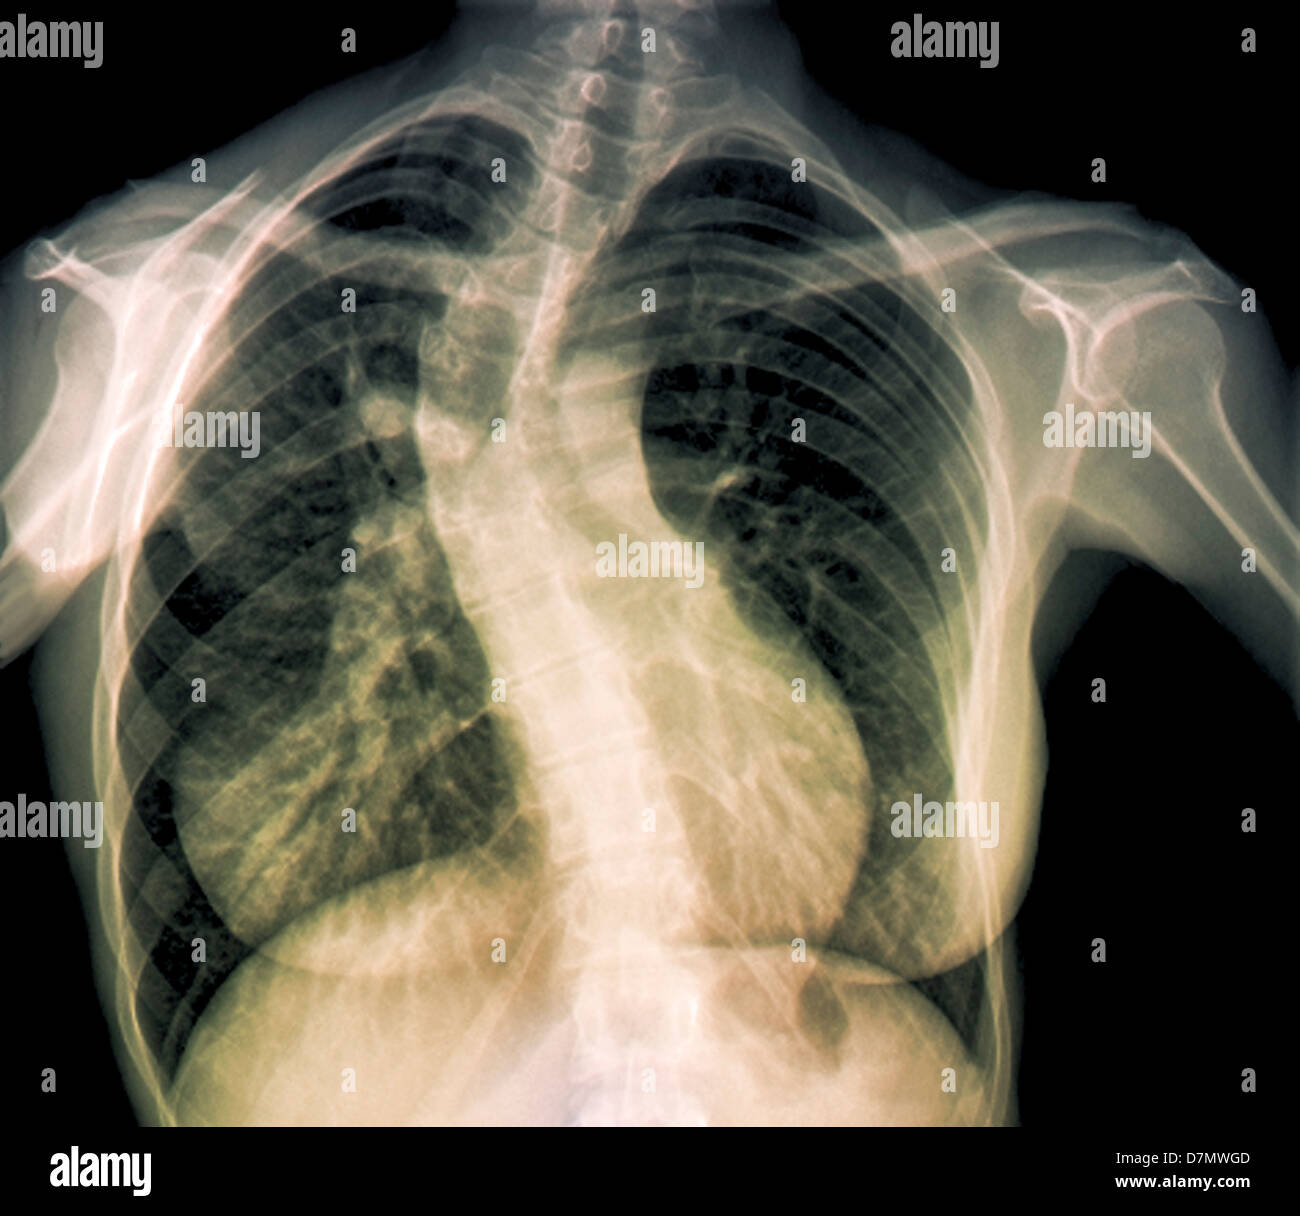 Scoliosis of the spine, X-ray - Stock Image